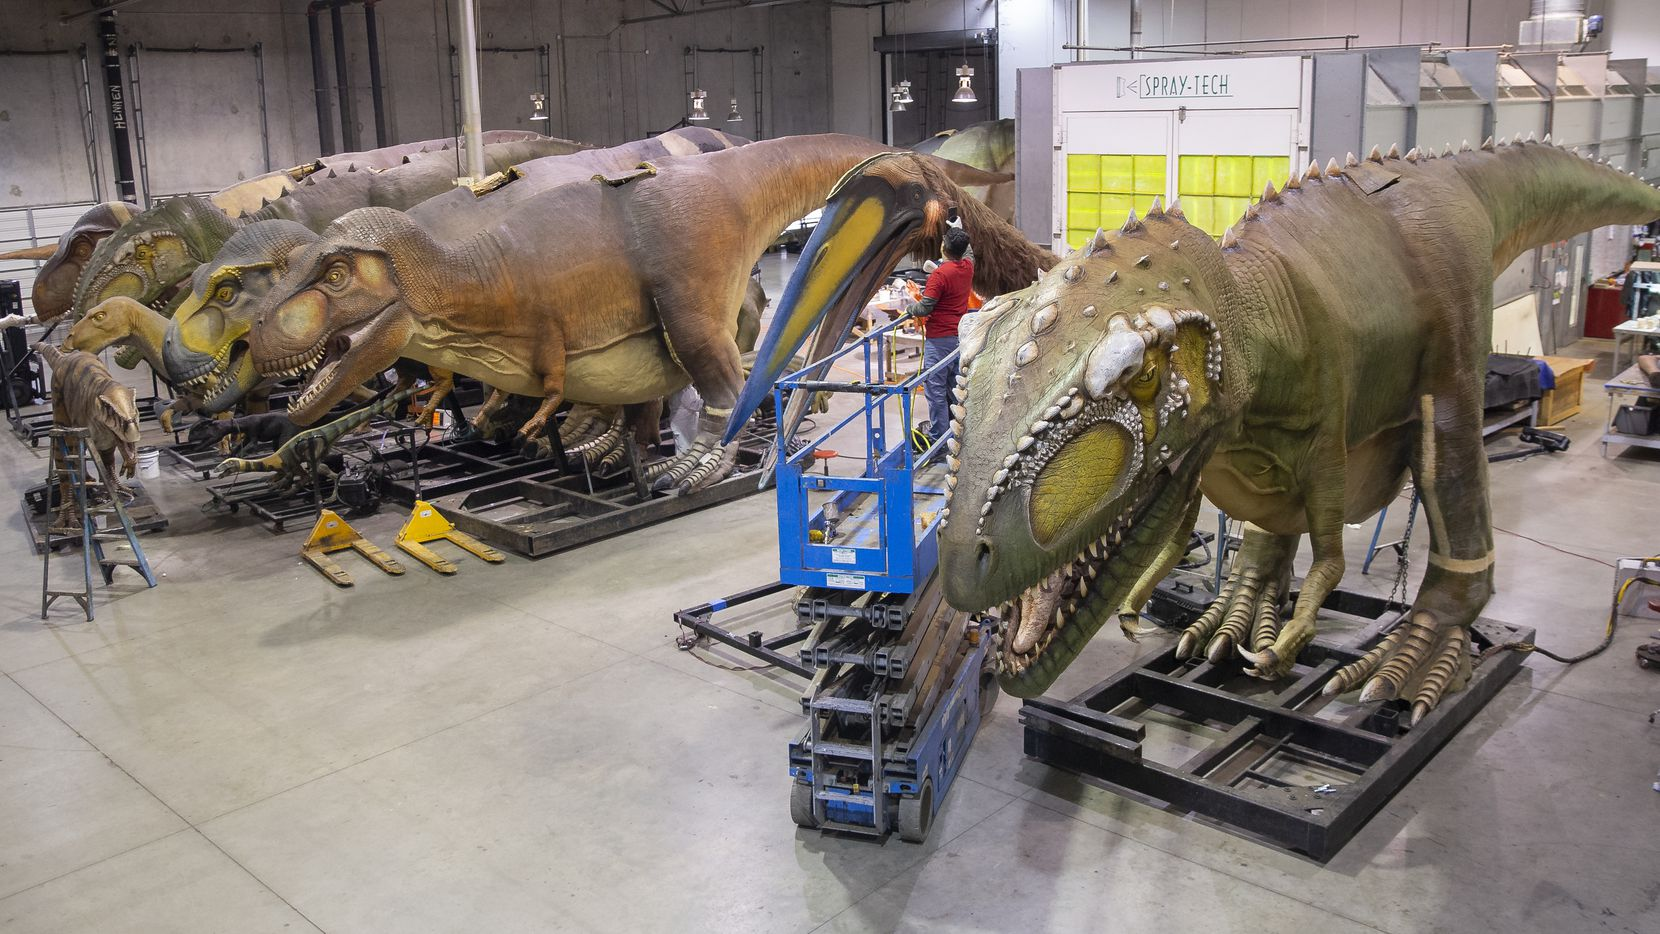 Employees prepared dinosaurs at Billings Productions, an animatronic dinosaur company in Allen, on Feb. 11, 2020.